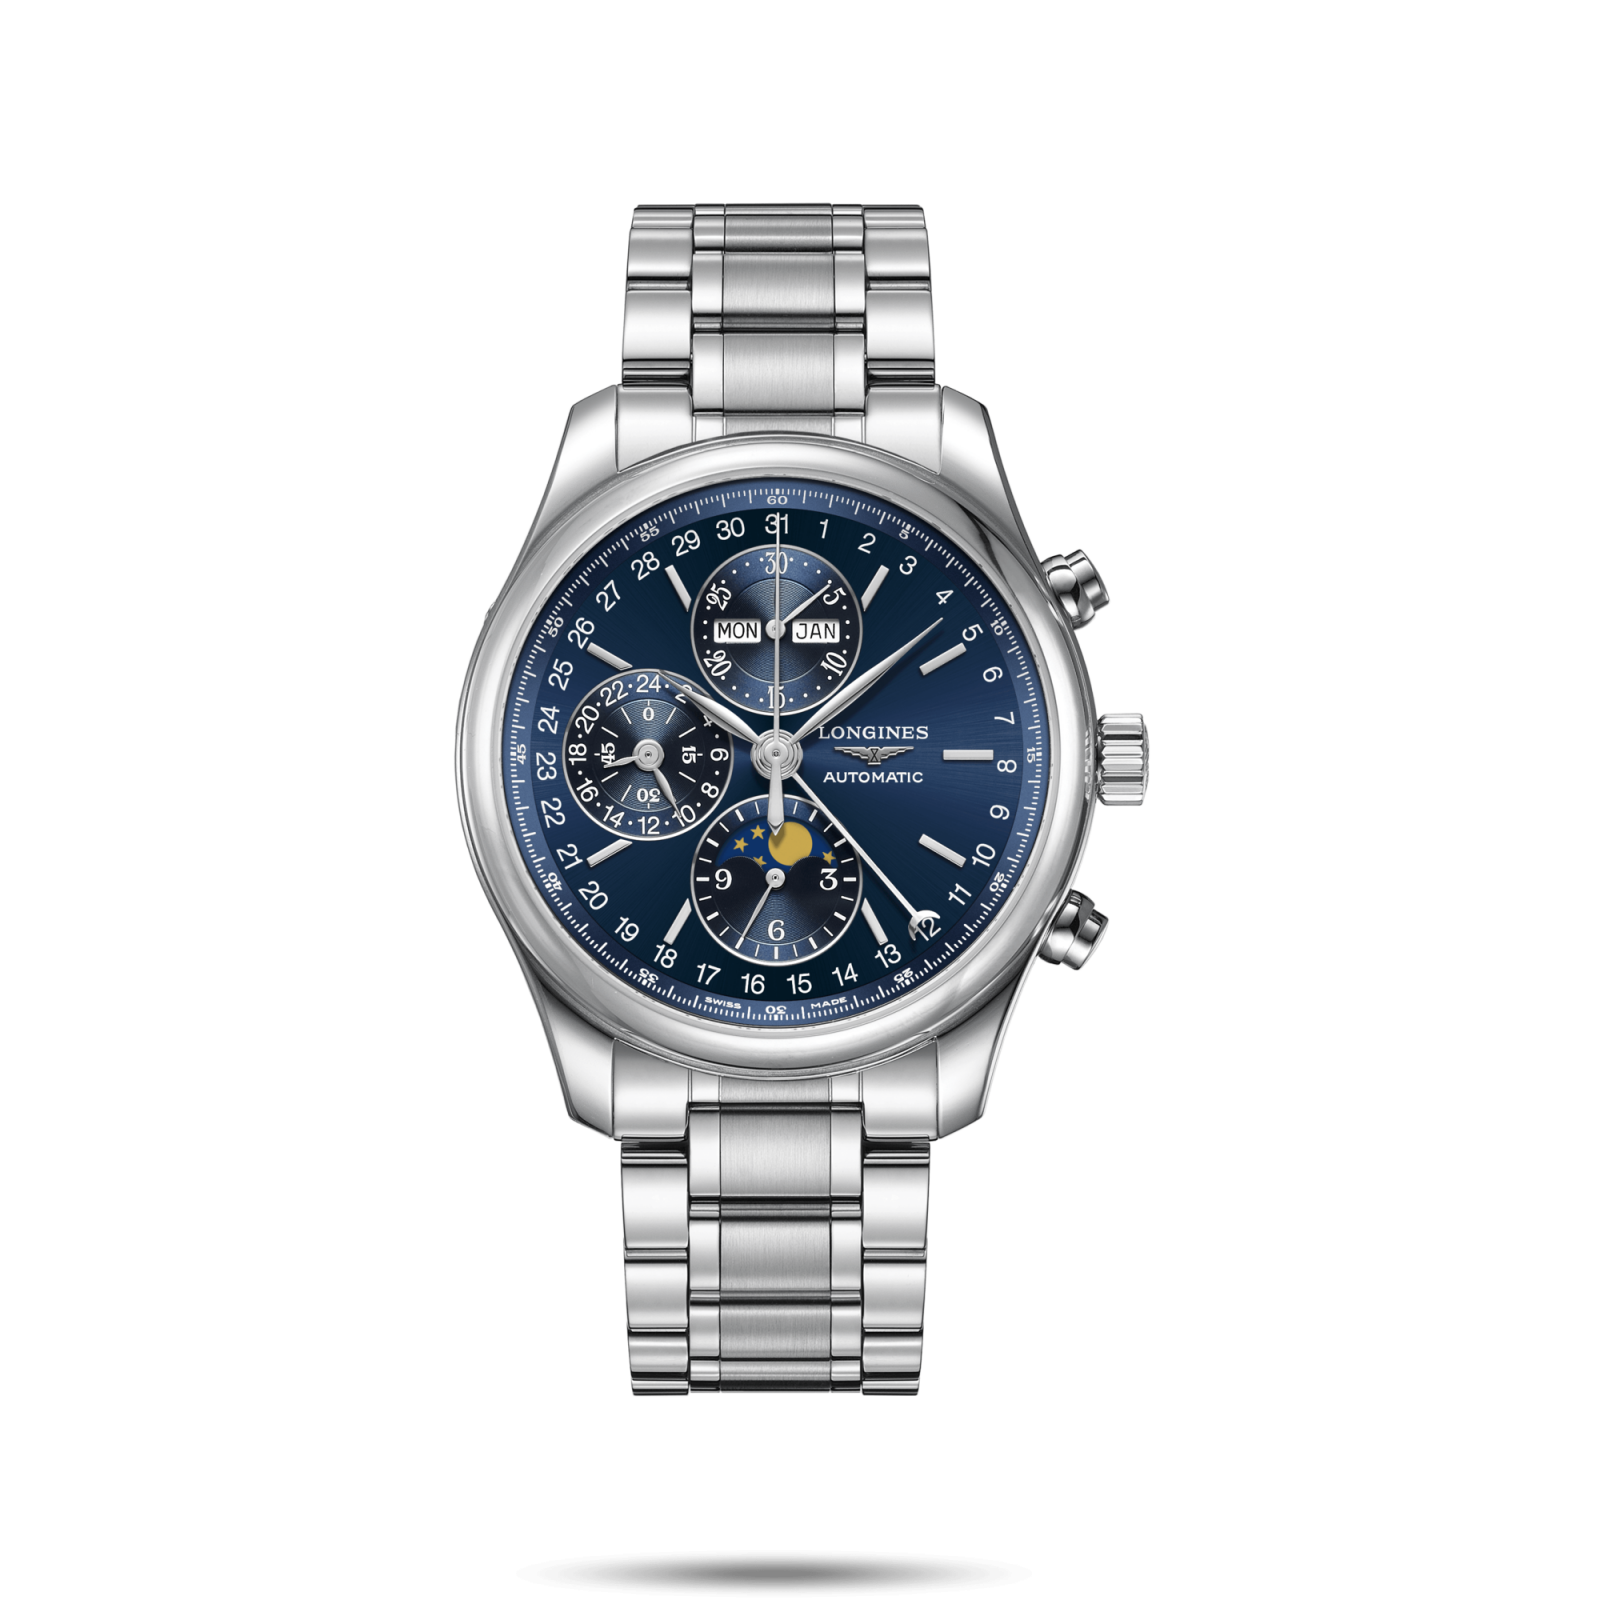 longines-the-longines-master-collection-l2-773-4-92-6-2000x2000.png